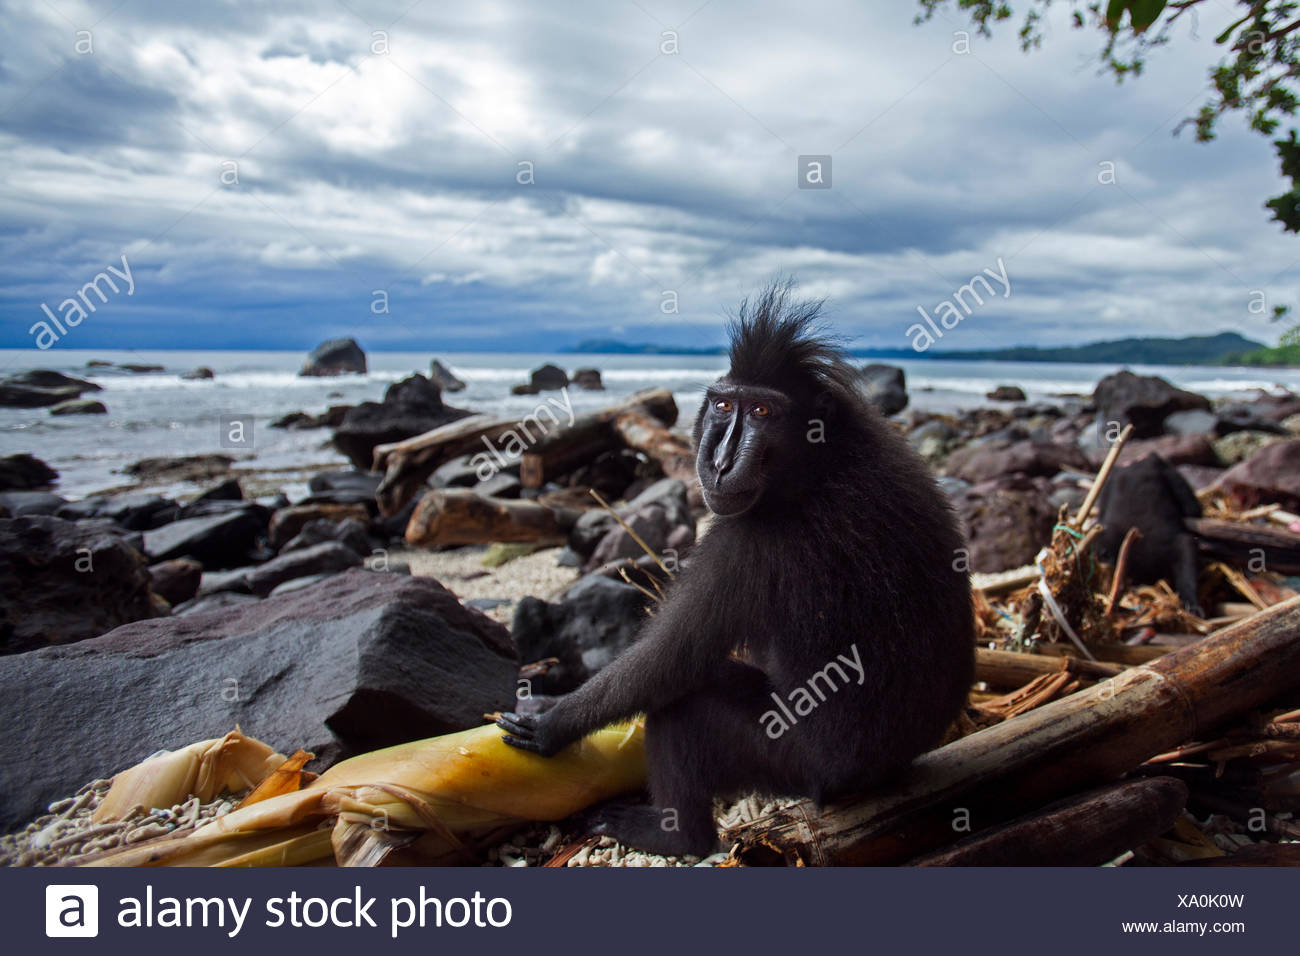 Celebes / Black crested macaque (Macaca nigra)  sub-adult male sitting on a beach, Tangkoko National Park, Sulawesi, Indonesia. - Stock Image